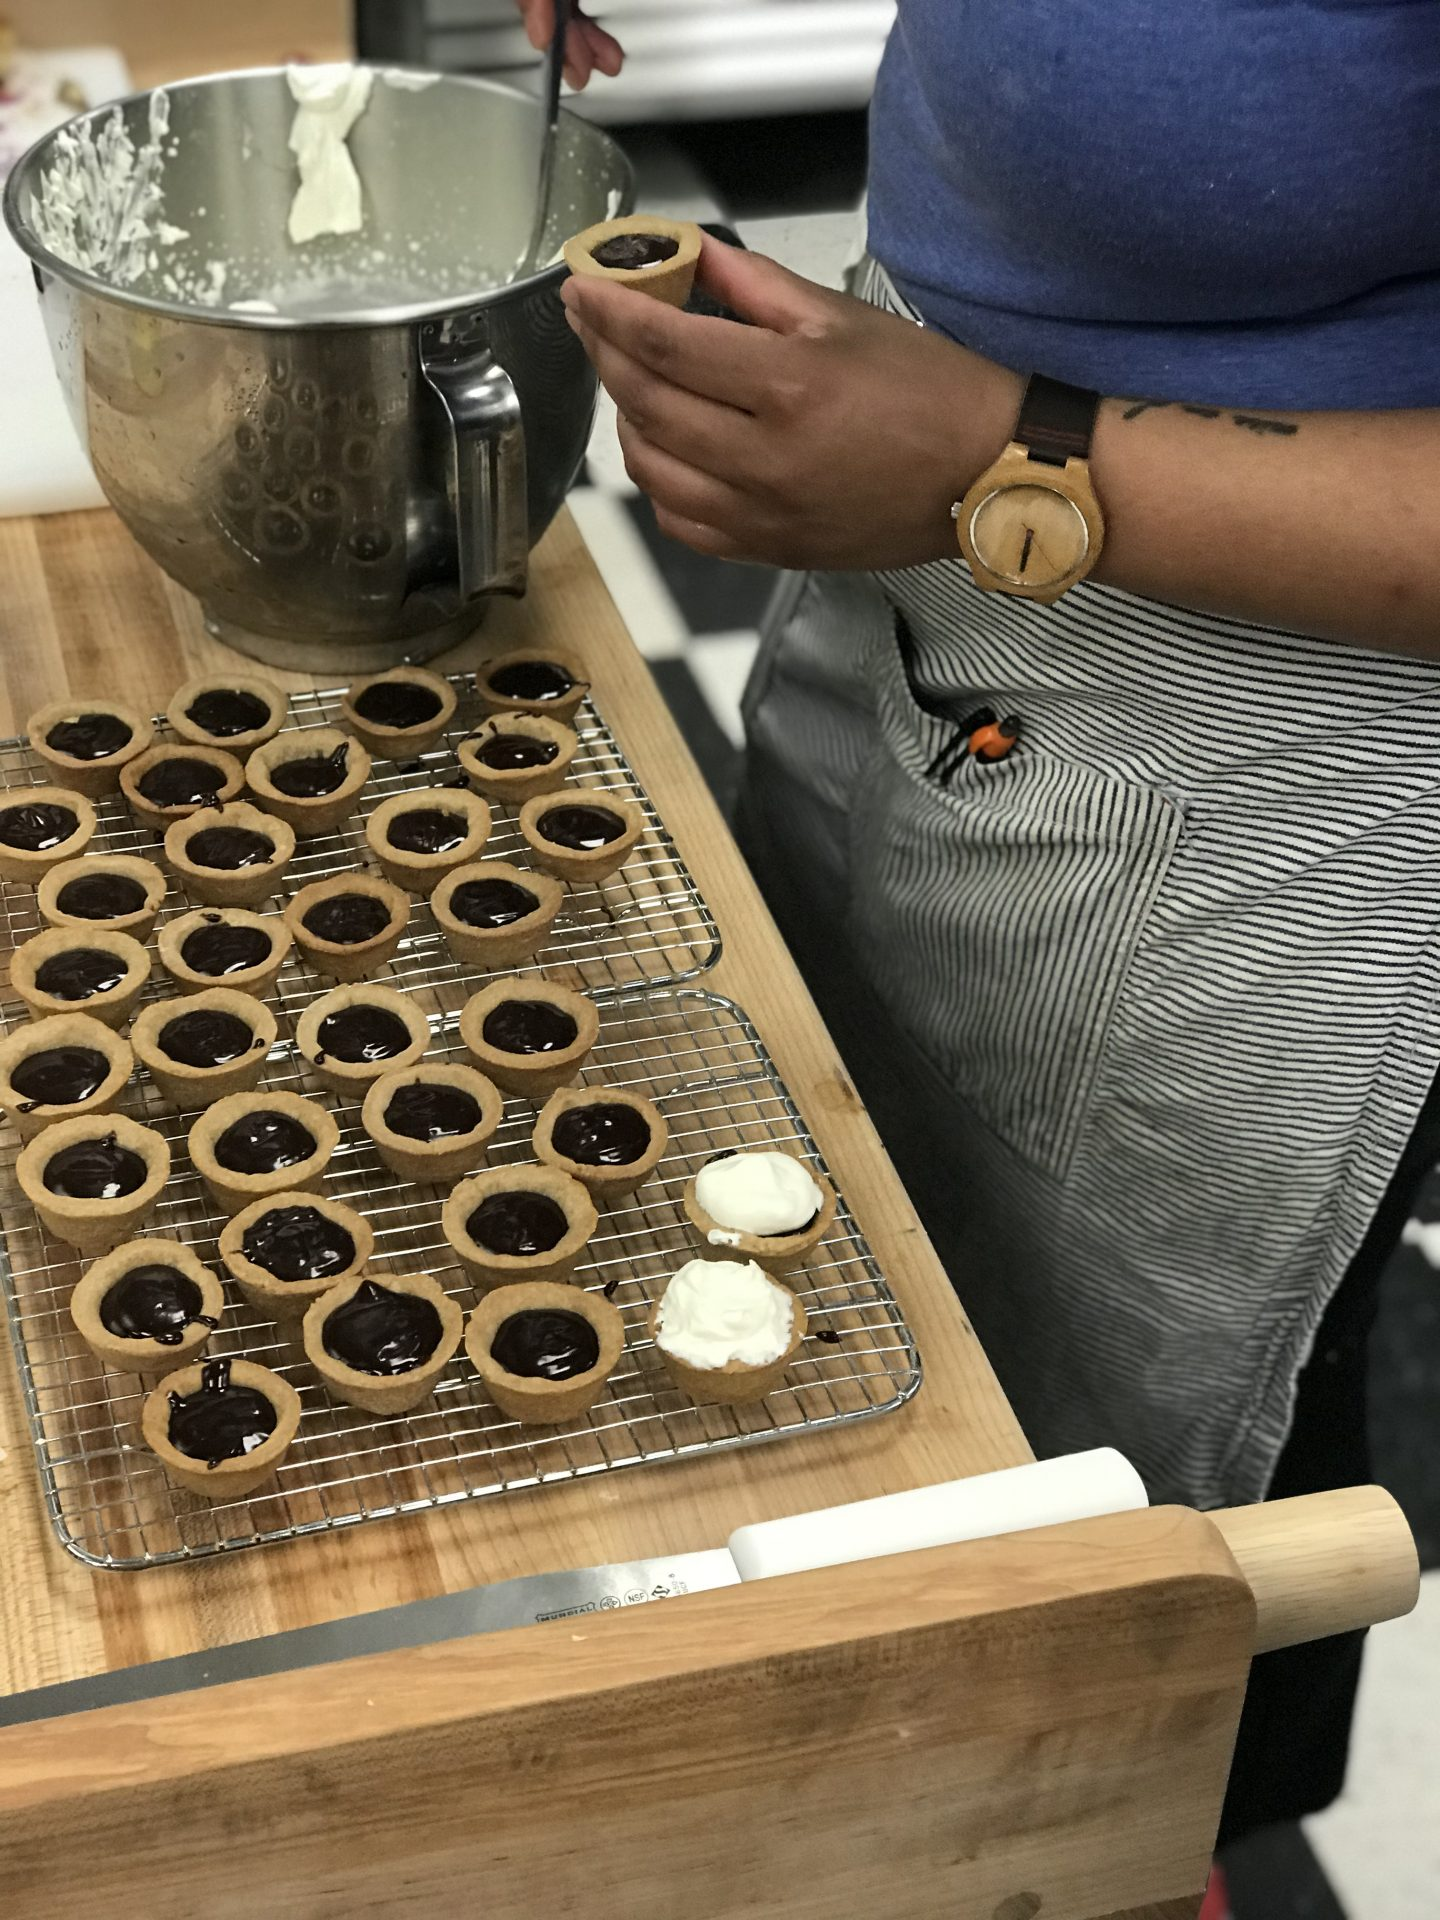 A person making pastries